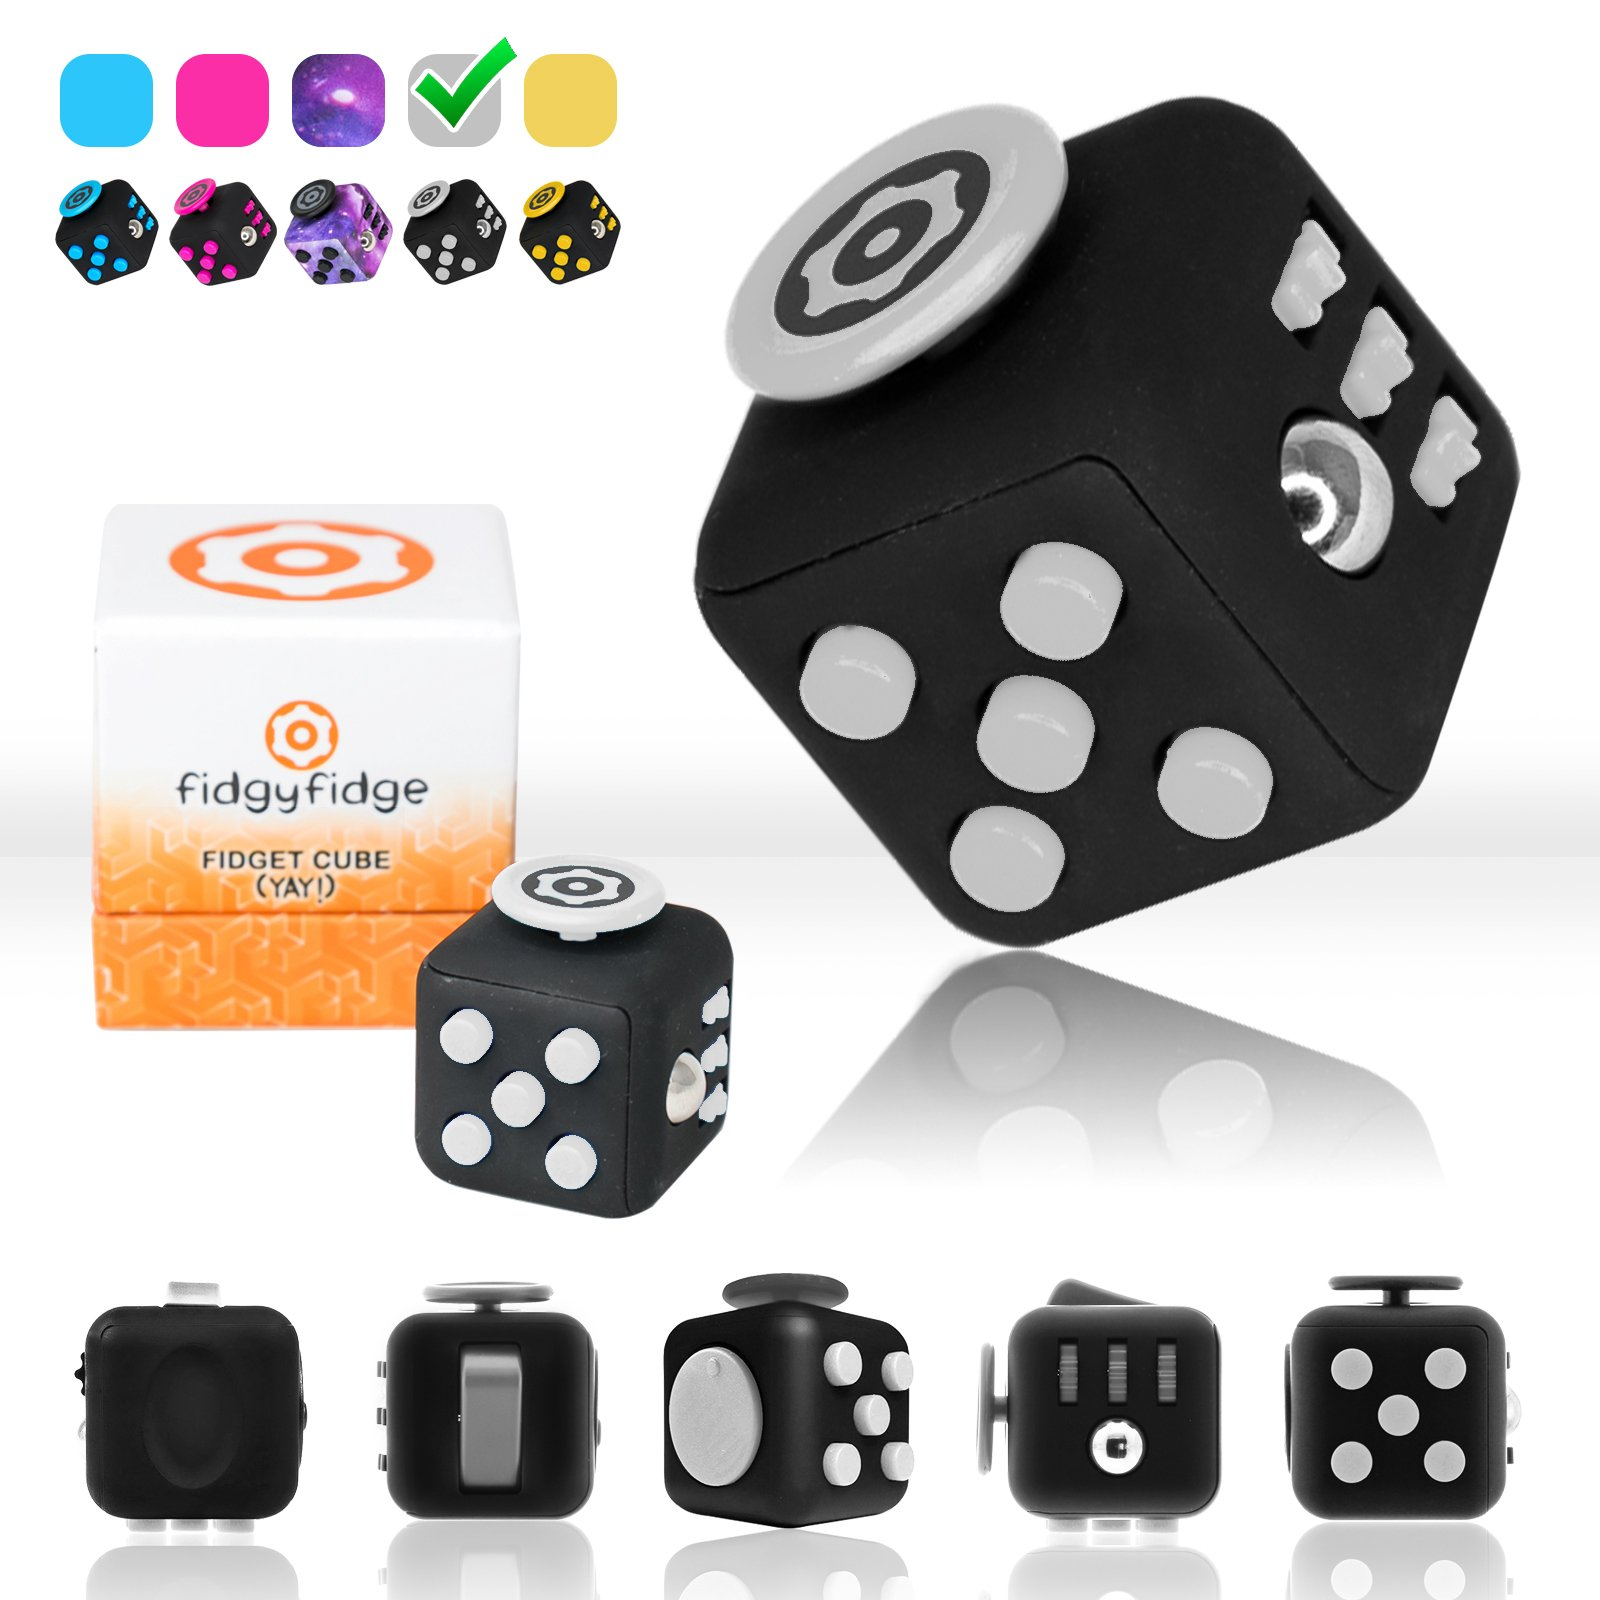 Fidget Cube by FidgyFidge | Anti-Stress Cube, Anxiety Toy, ADHD Fidget Toy for Better Focus and Stress Relief (Black)